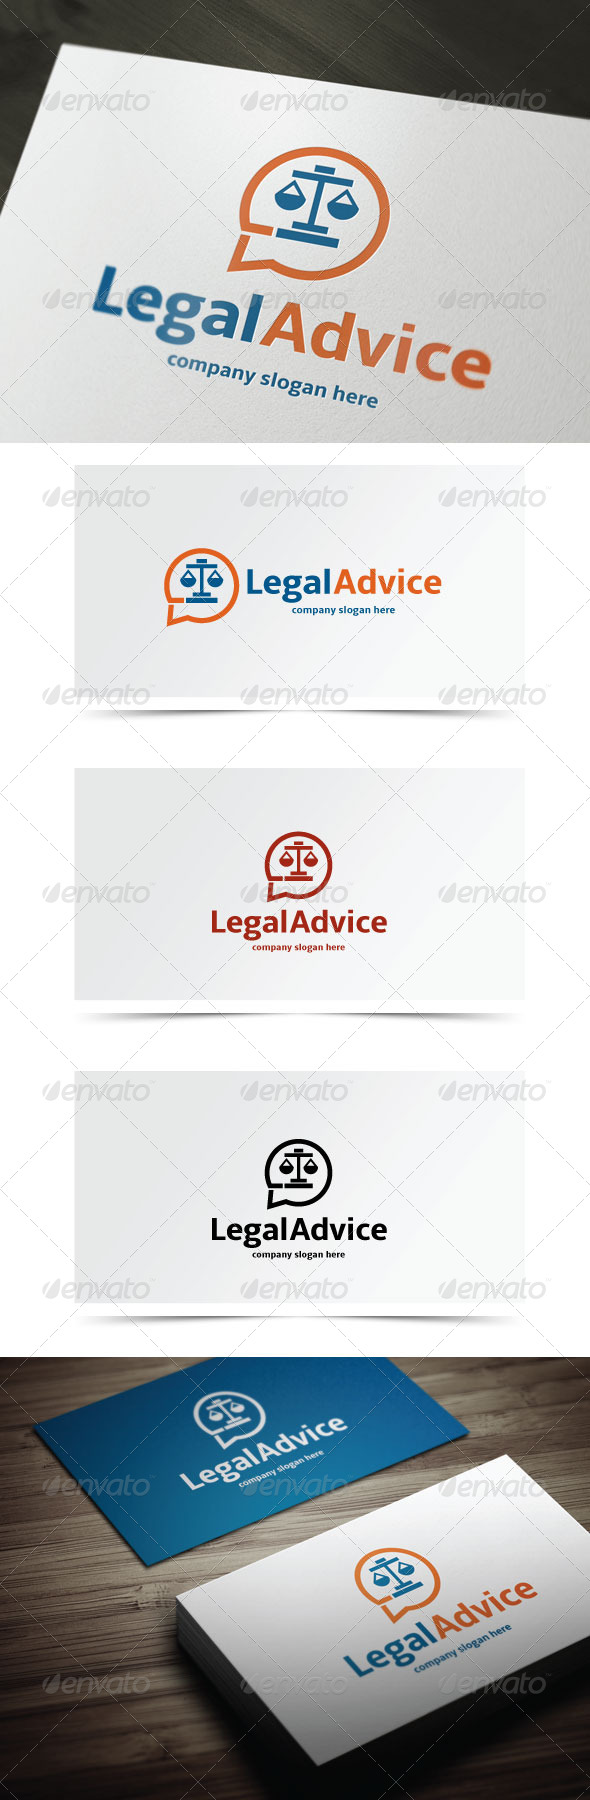 Legal Advice - Symbols Logo Templates